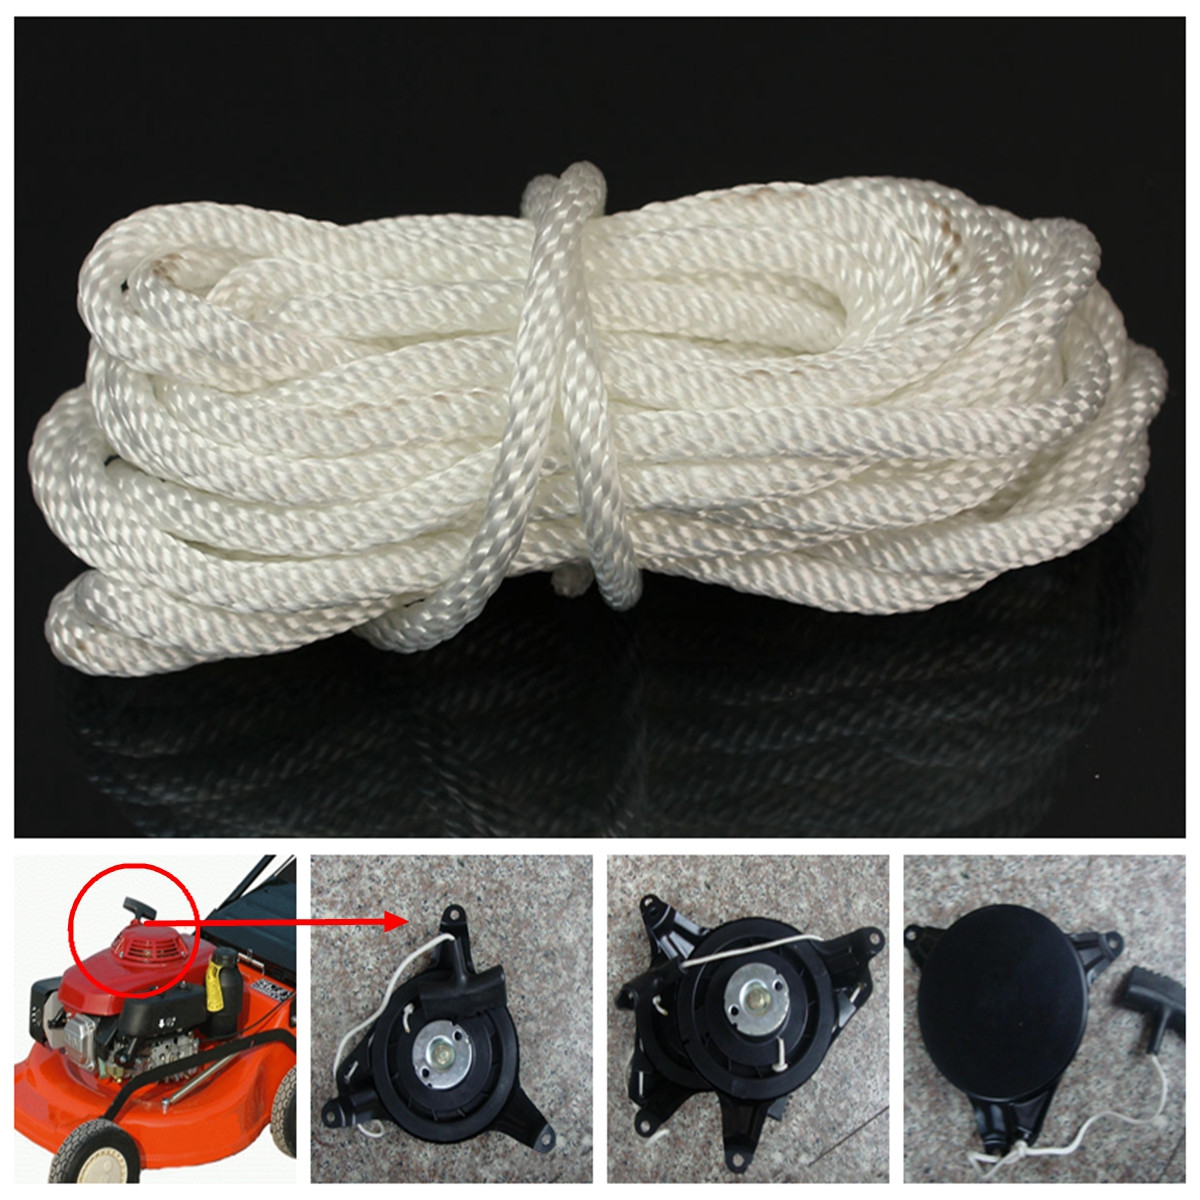 Details about 2X Multi Size Nylon Pull Starter Recoil Start Cord Rope Chain  For Most Lawnmower